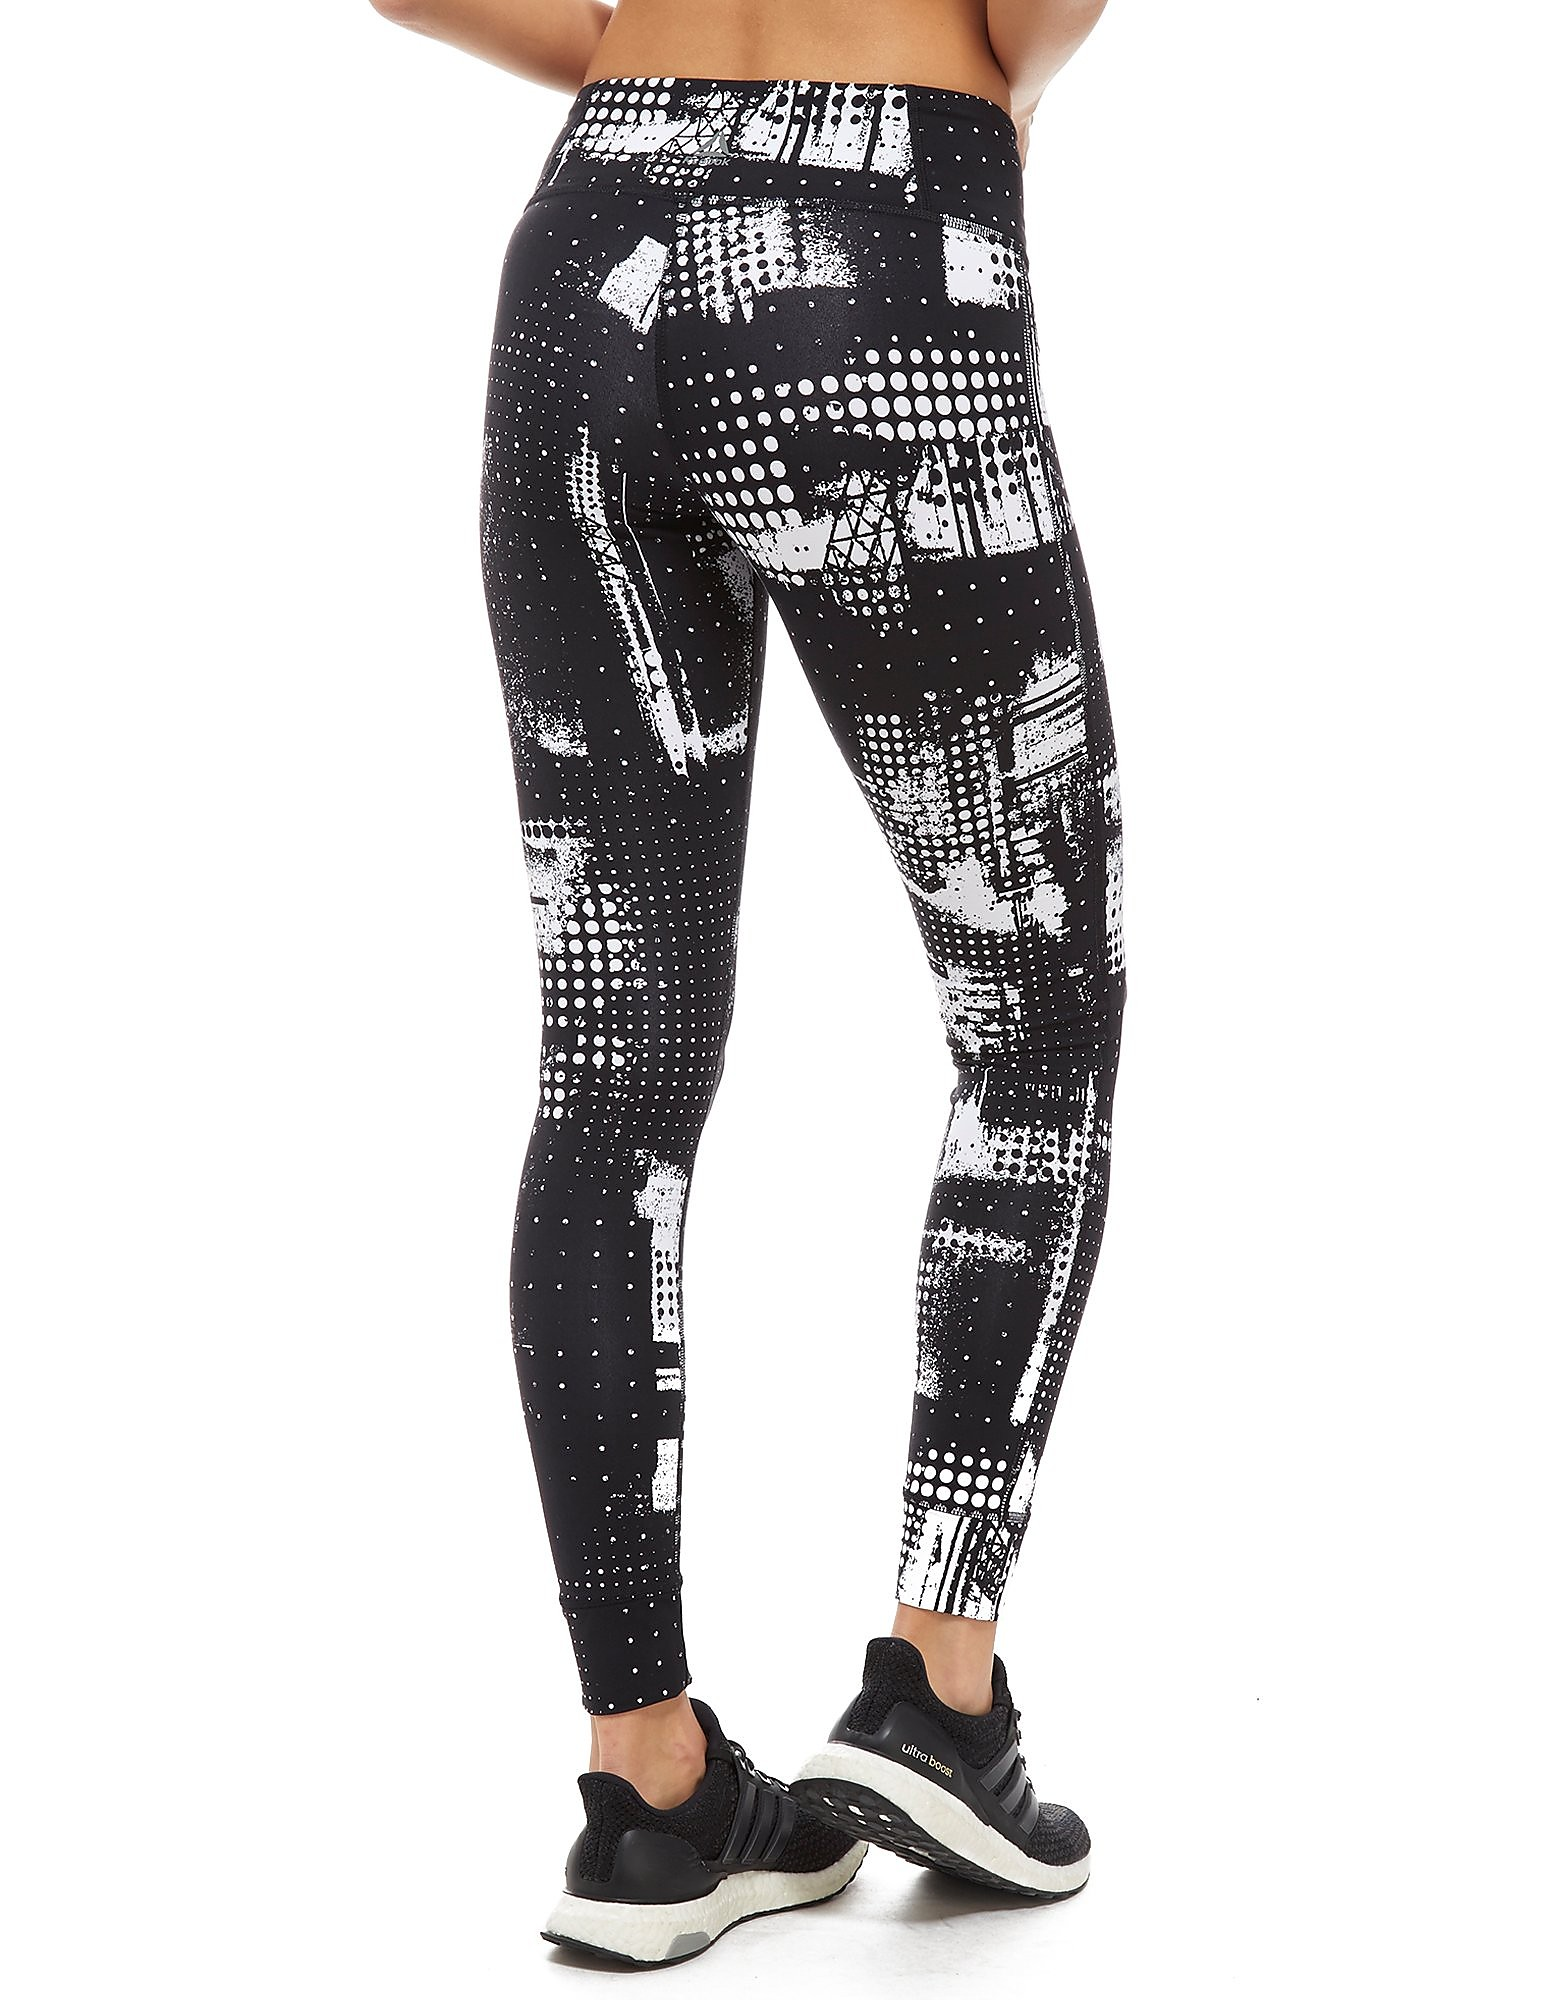 Reebok Lux Print Tights